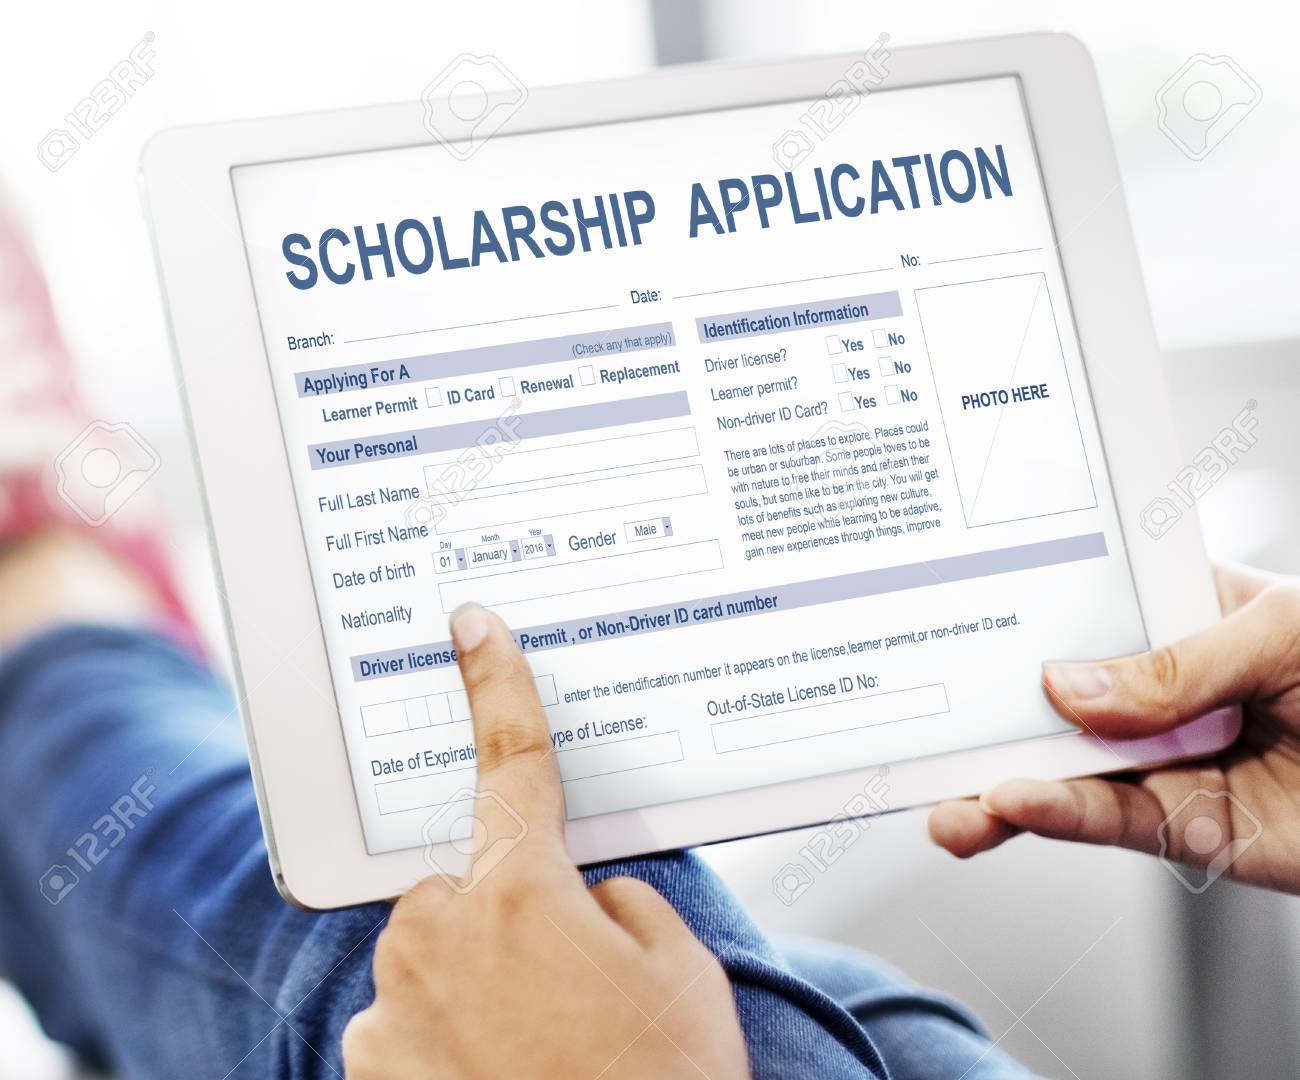 scholarship application form foundation concept stock photo picture